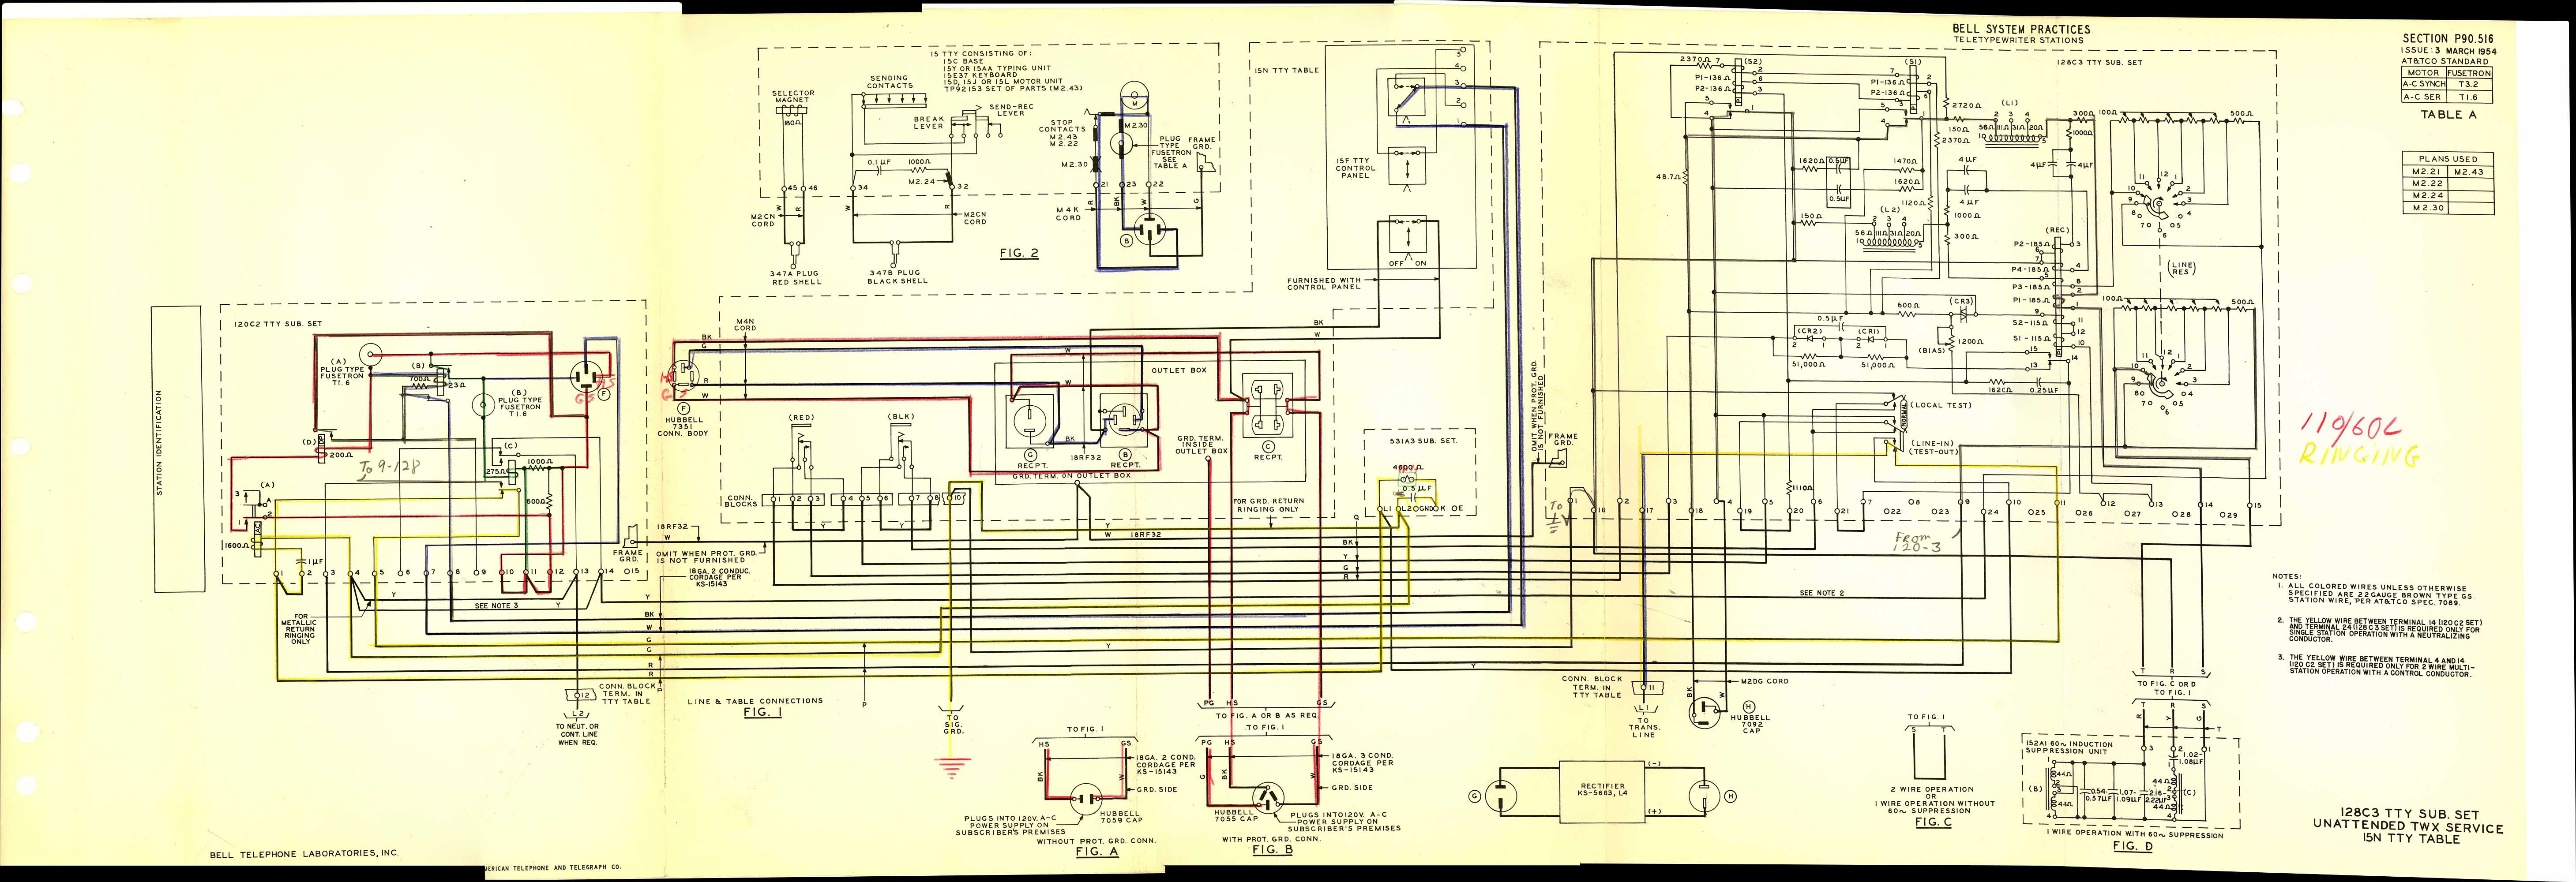 Teletype 28 S 15 teletype mod 28 maintenance manual bell systems 801 wiring diagram at soozxer.org